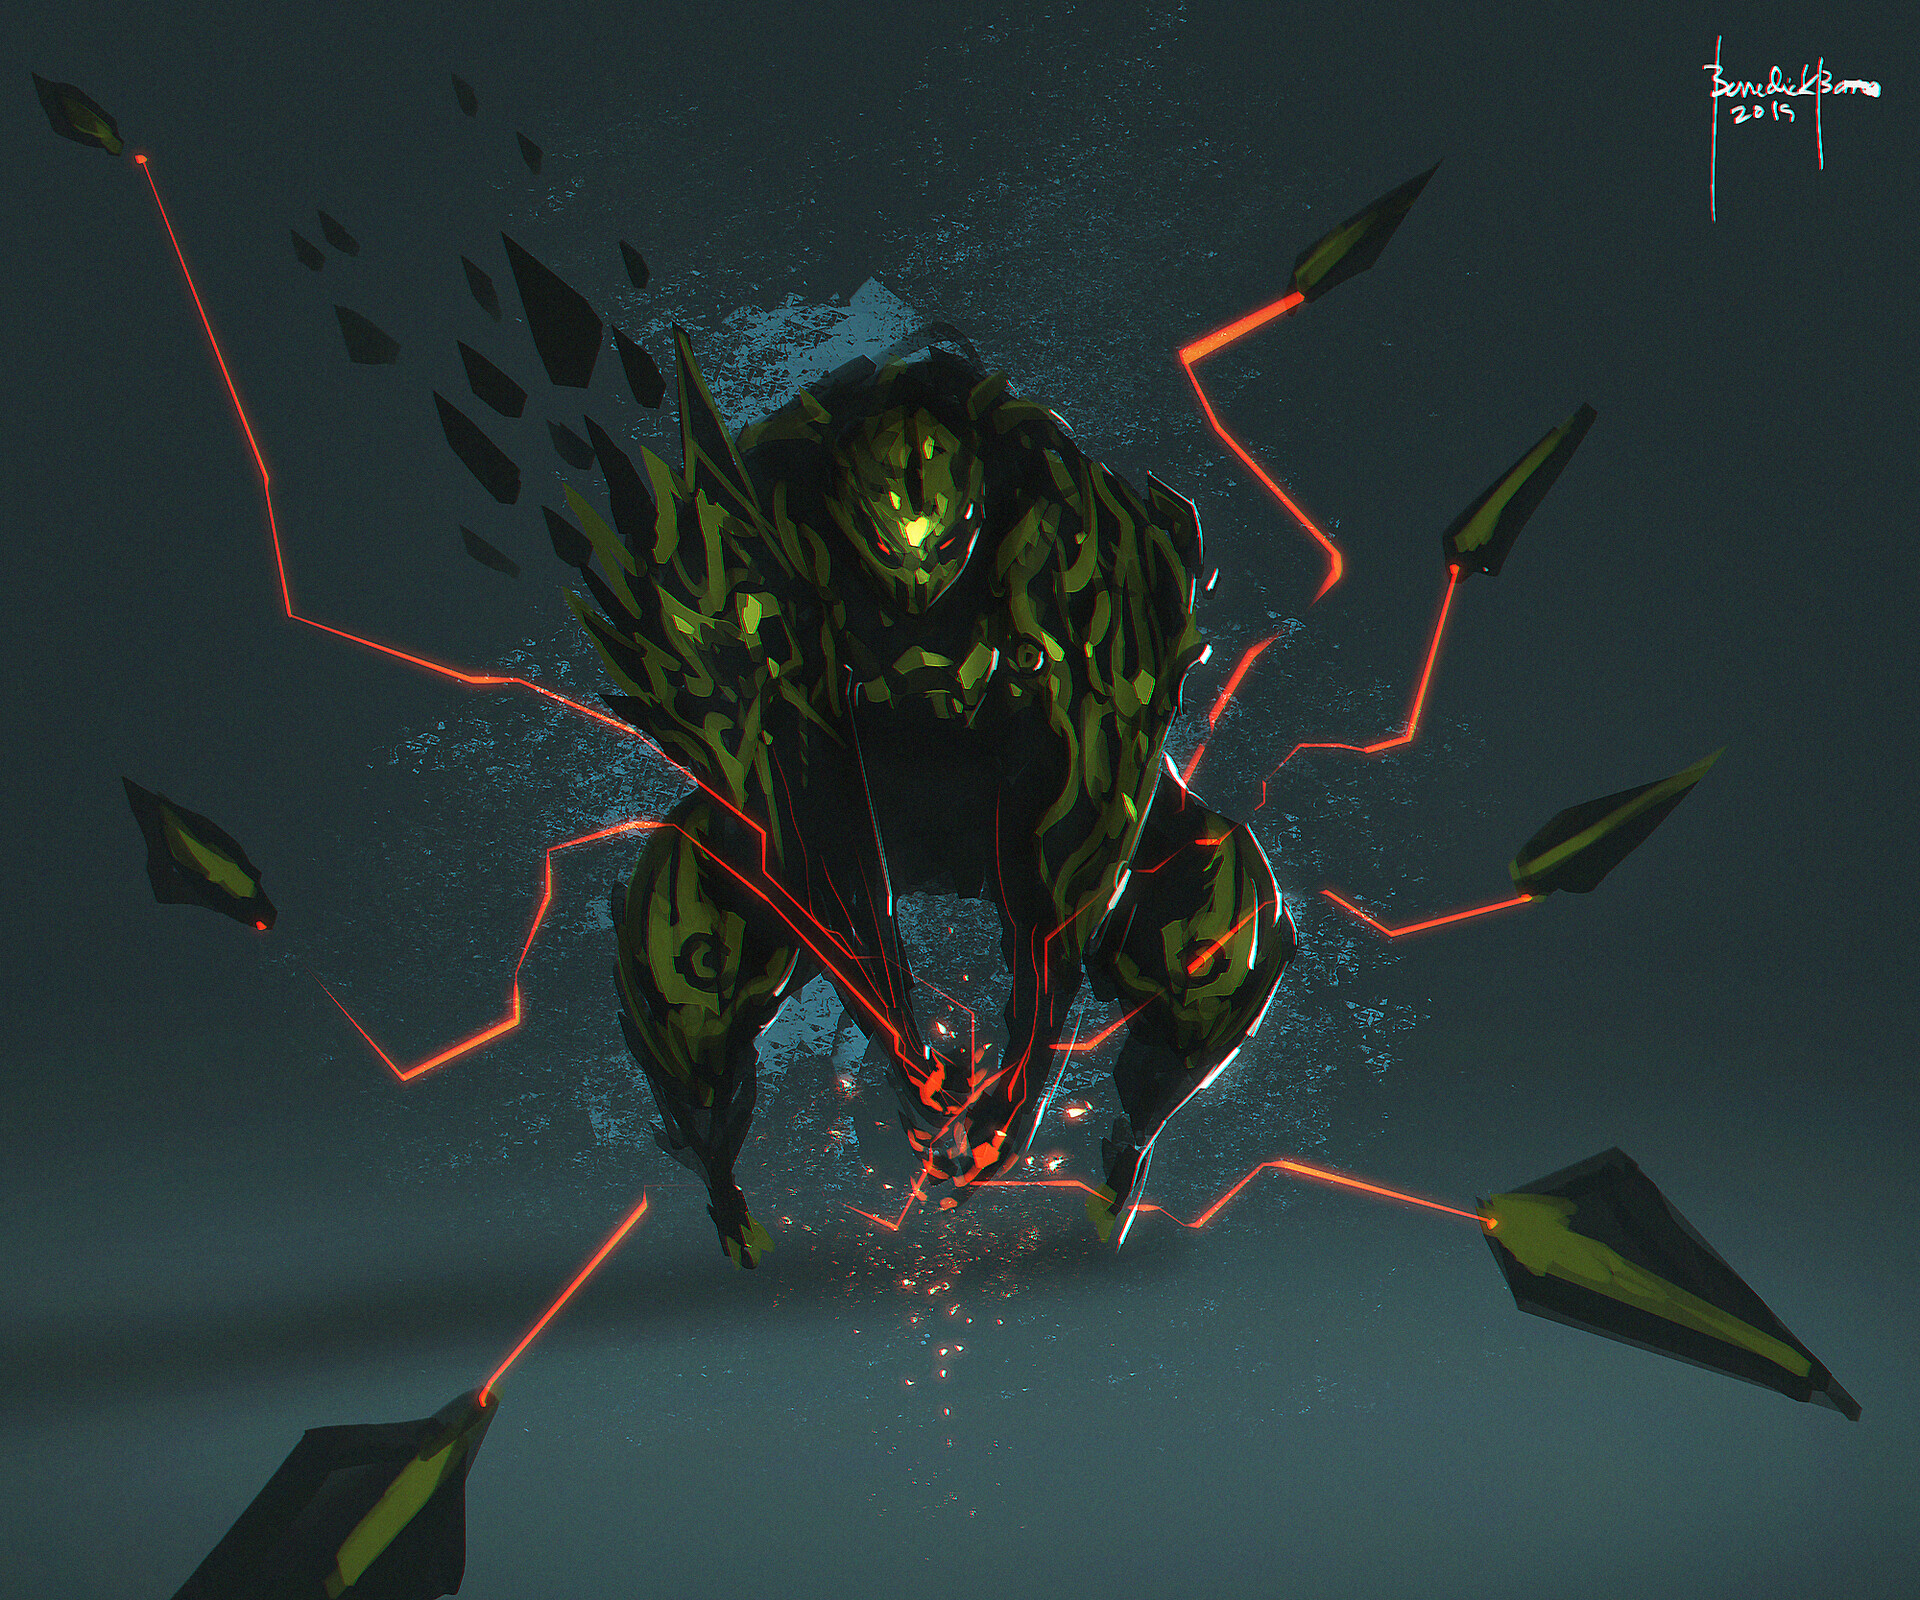 Death Touch - character design - spikes mind-controlled weapon